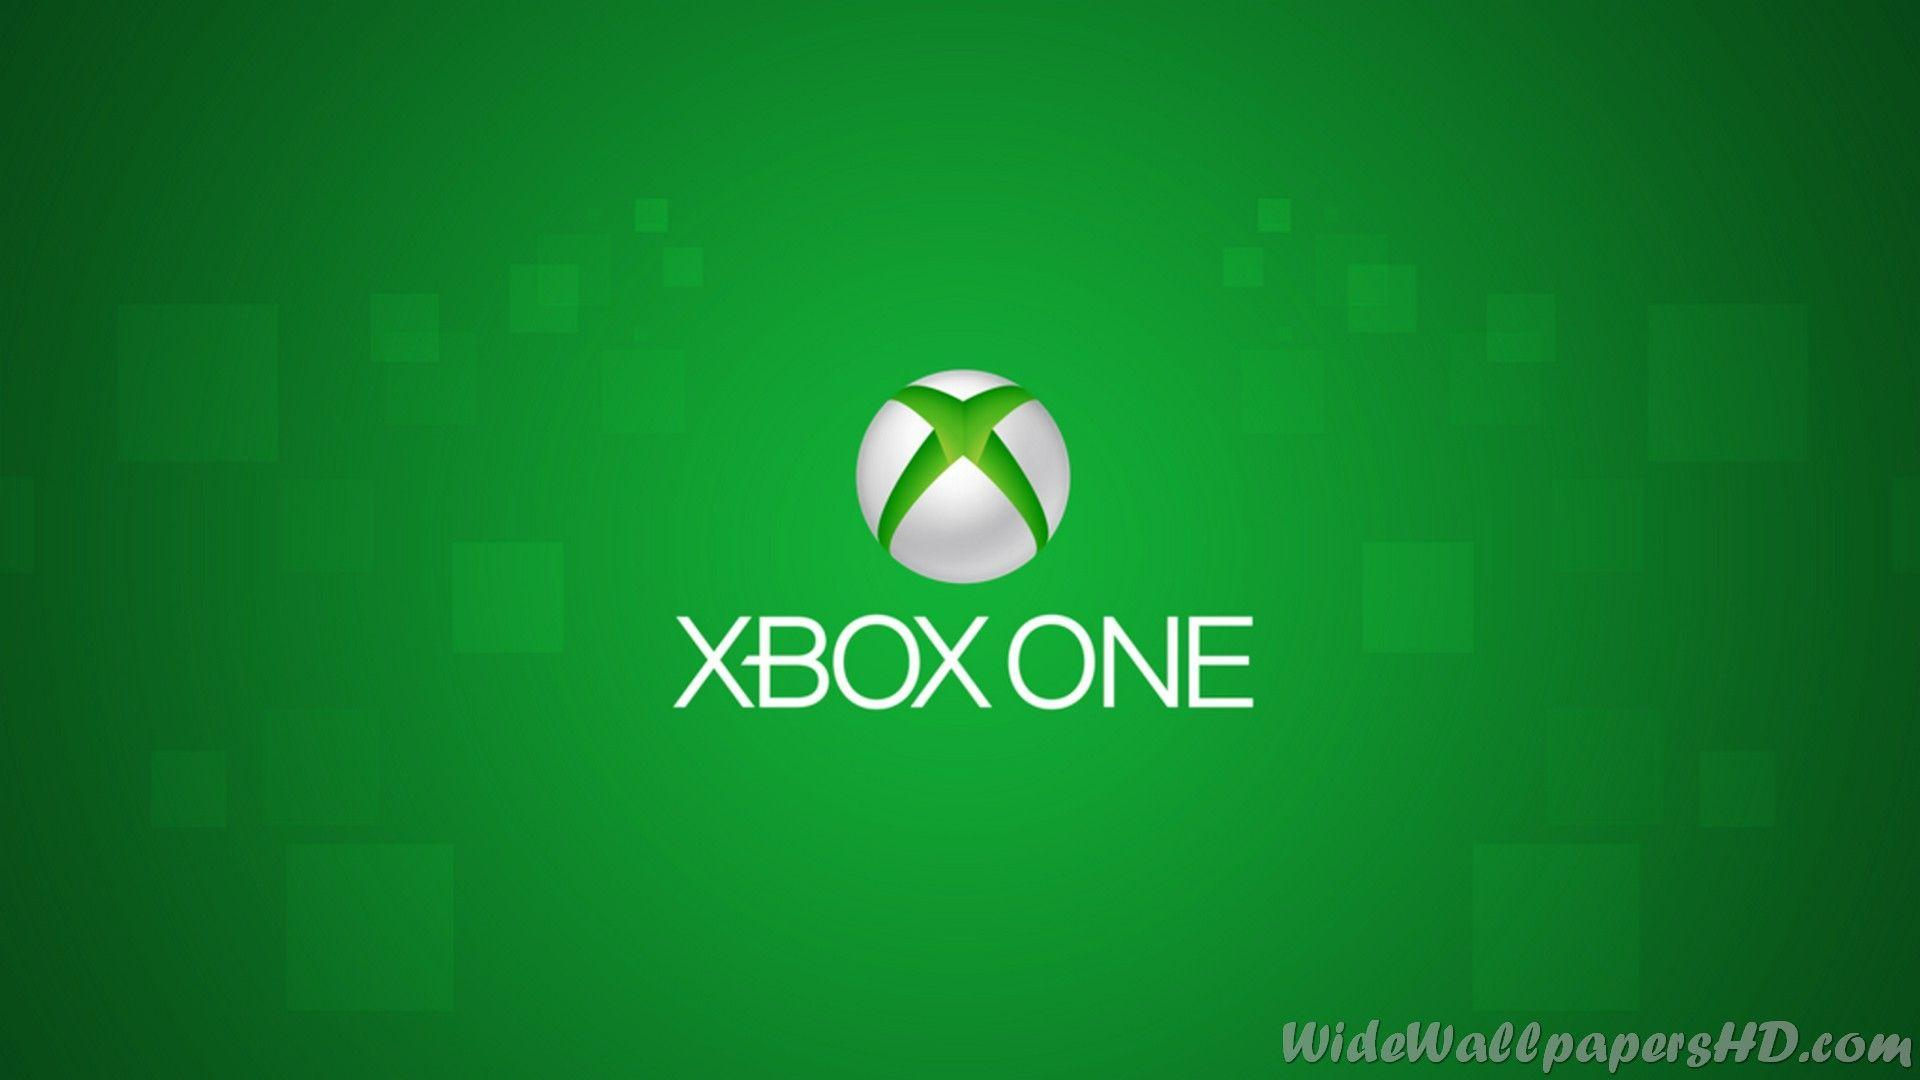 Foyer Wallpaper Xbox One : Xbox one wallpapers wallpaper cave